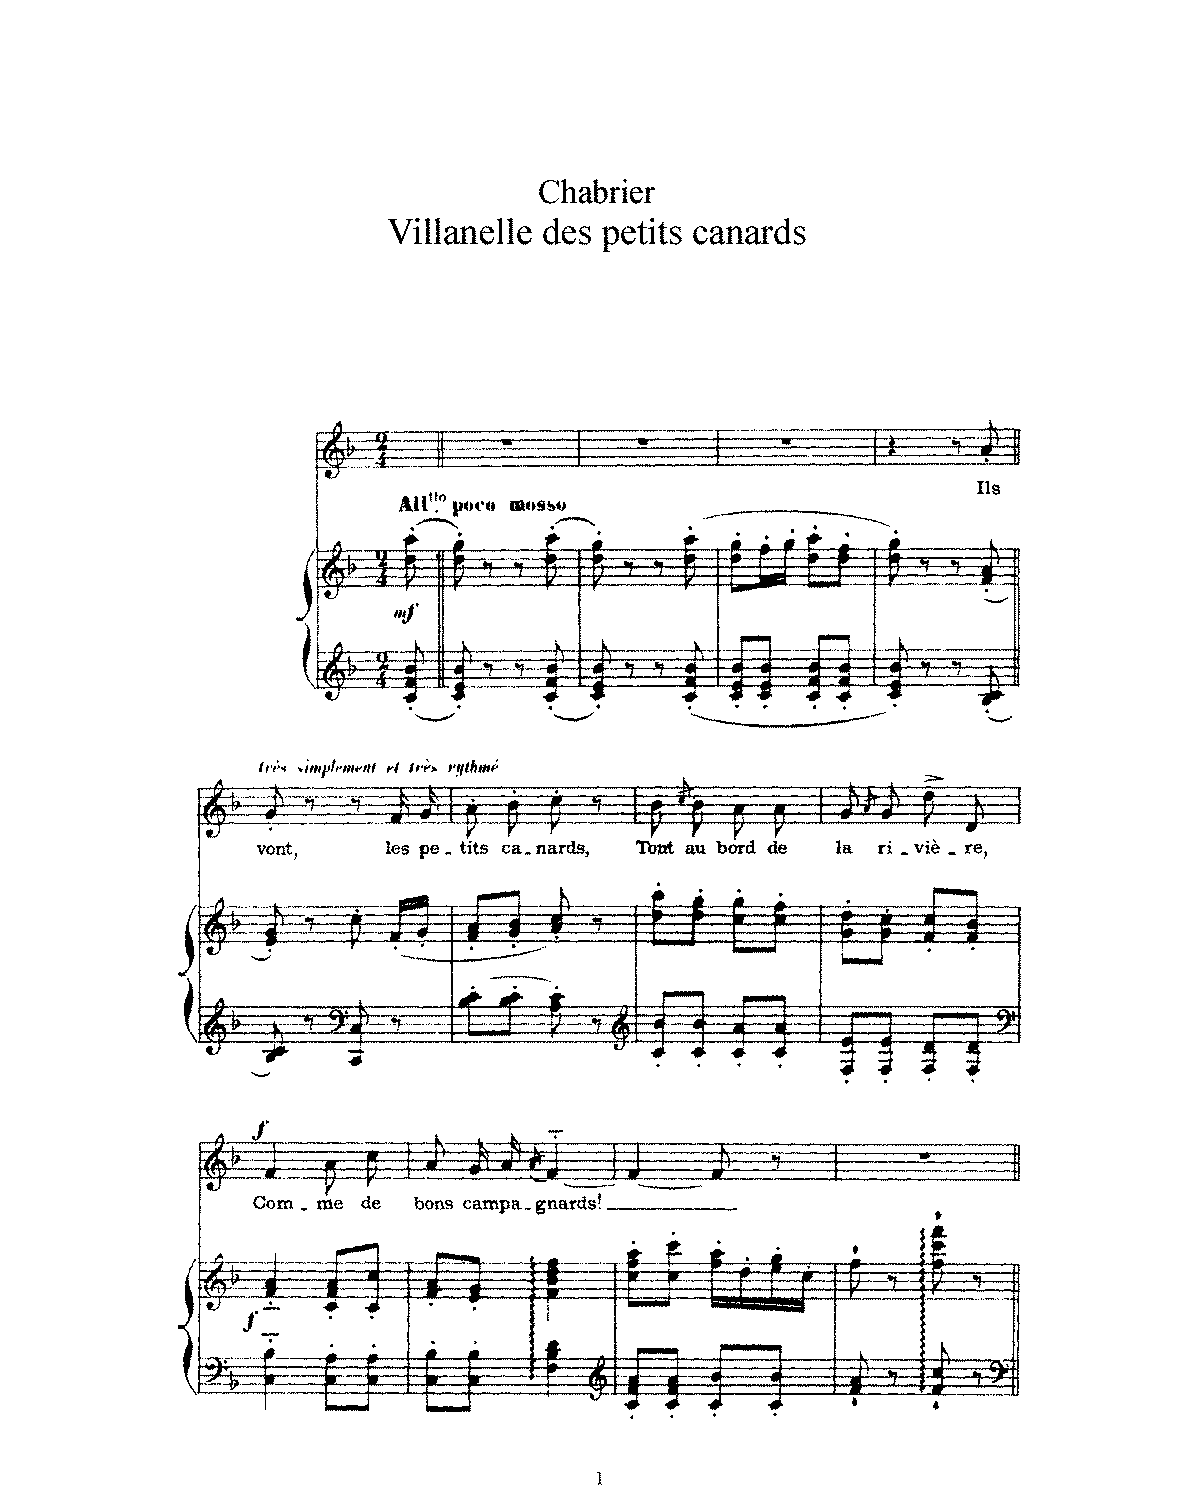 PMLP51840-Chabrier - Villanelle des petits canards (voice and piano).pdf